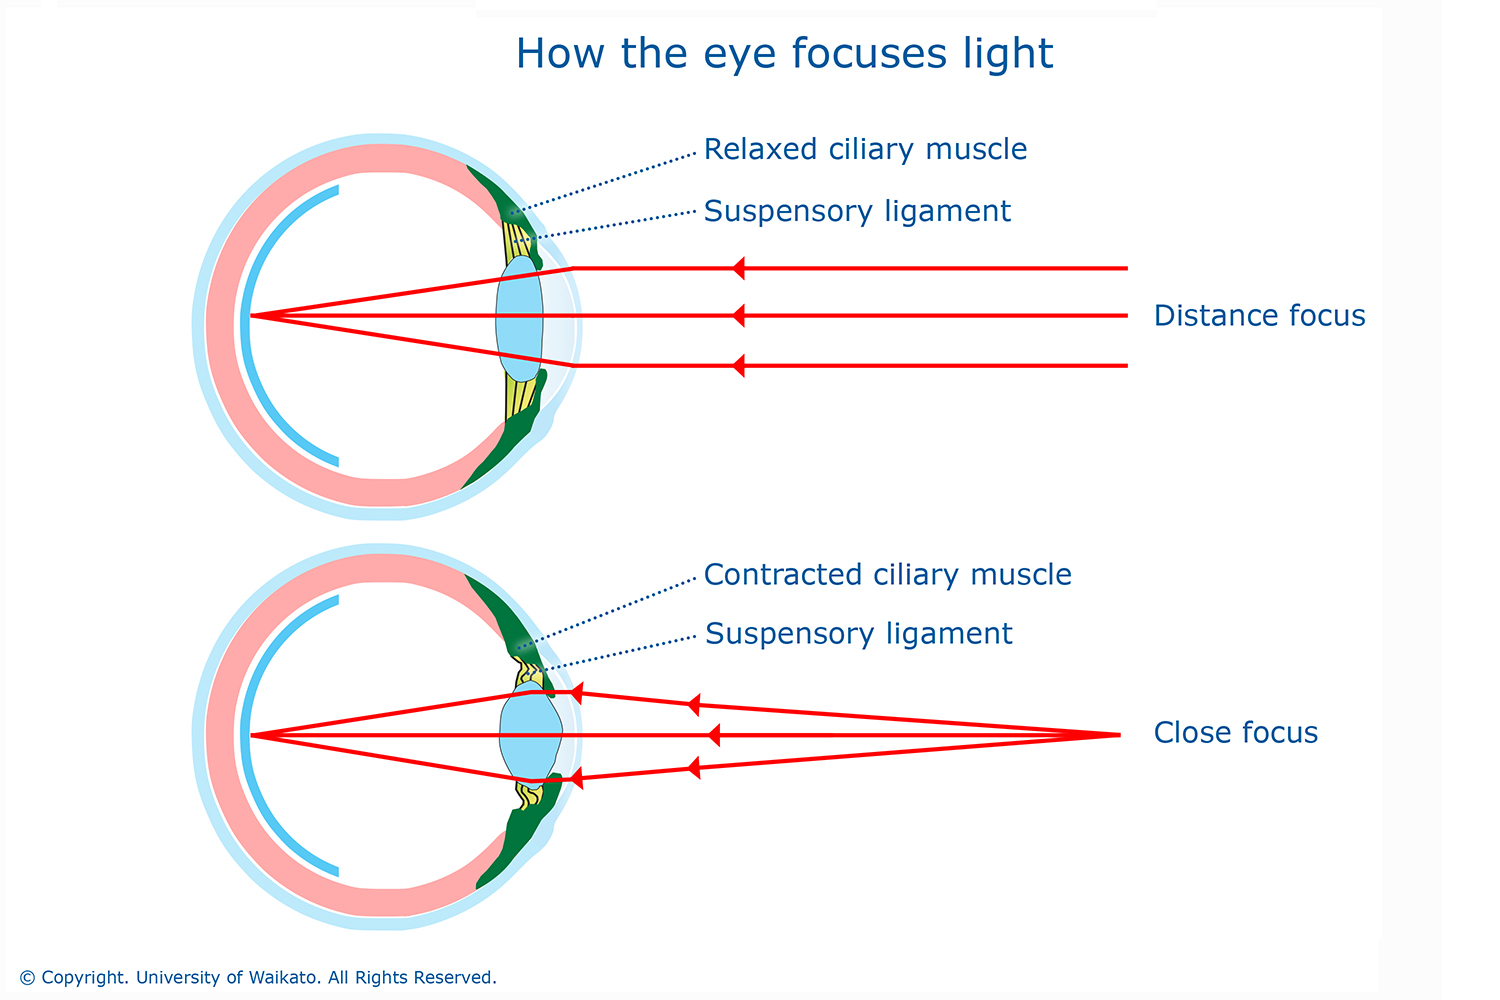 How the eye focuses light — Science Learning Hub